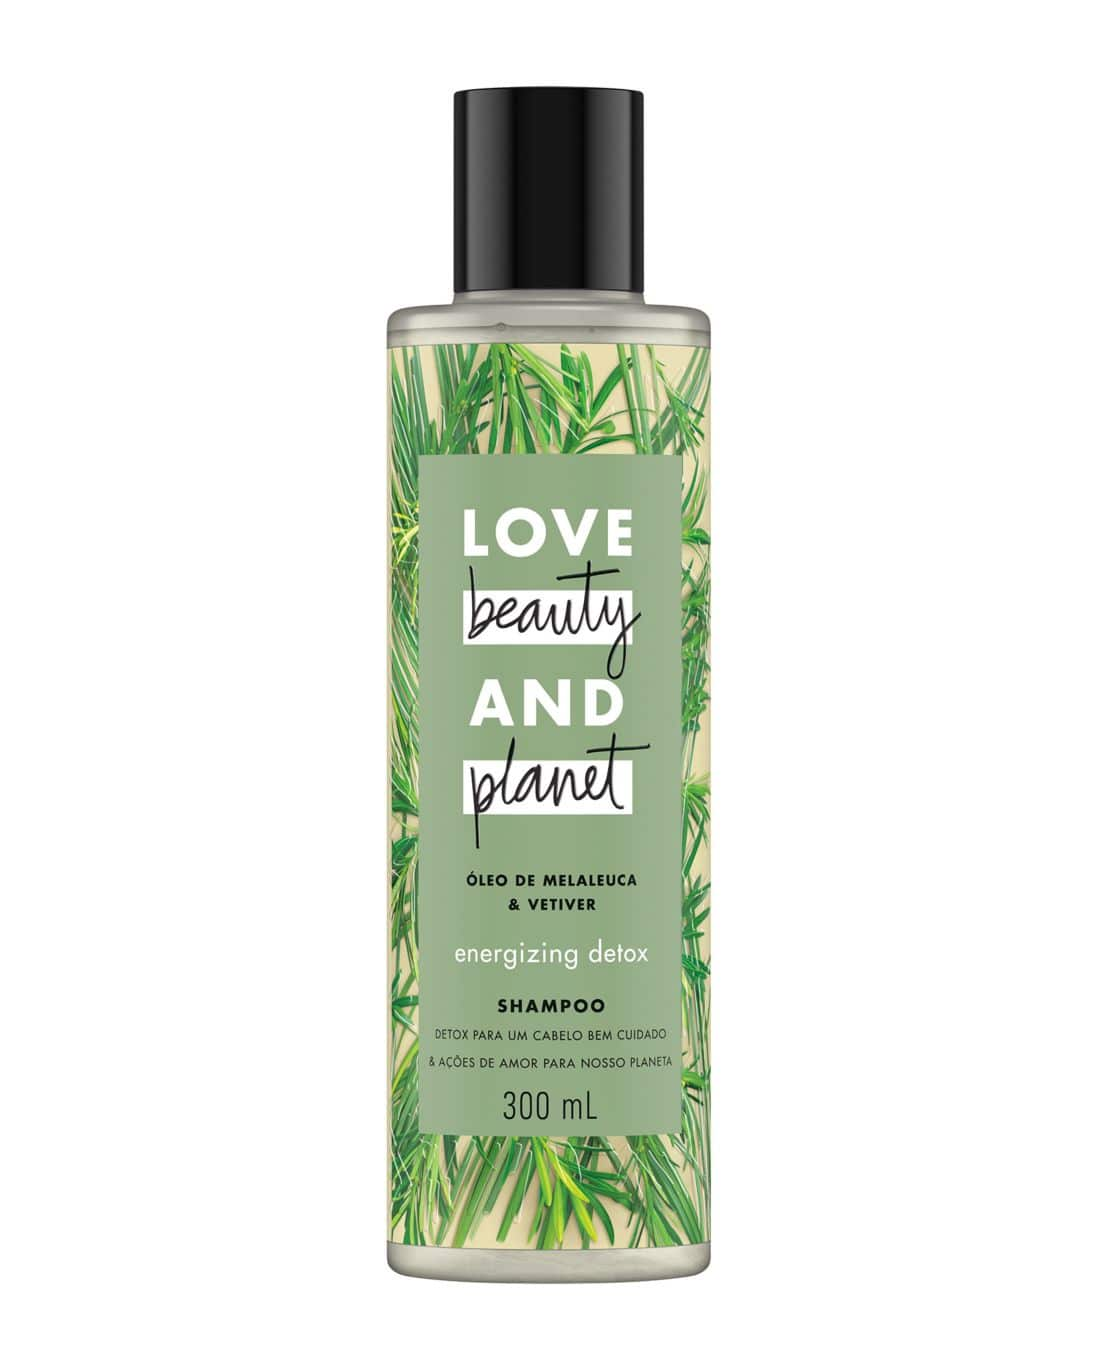 Shampoo Energizing Detox Óleo de Melaleuca & Vetiver Love, Beauty And Planet 300ml